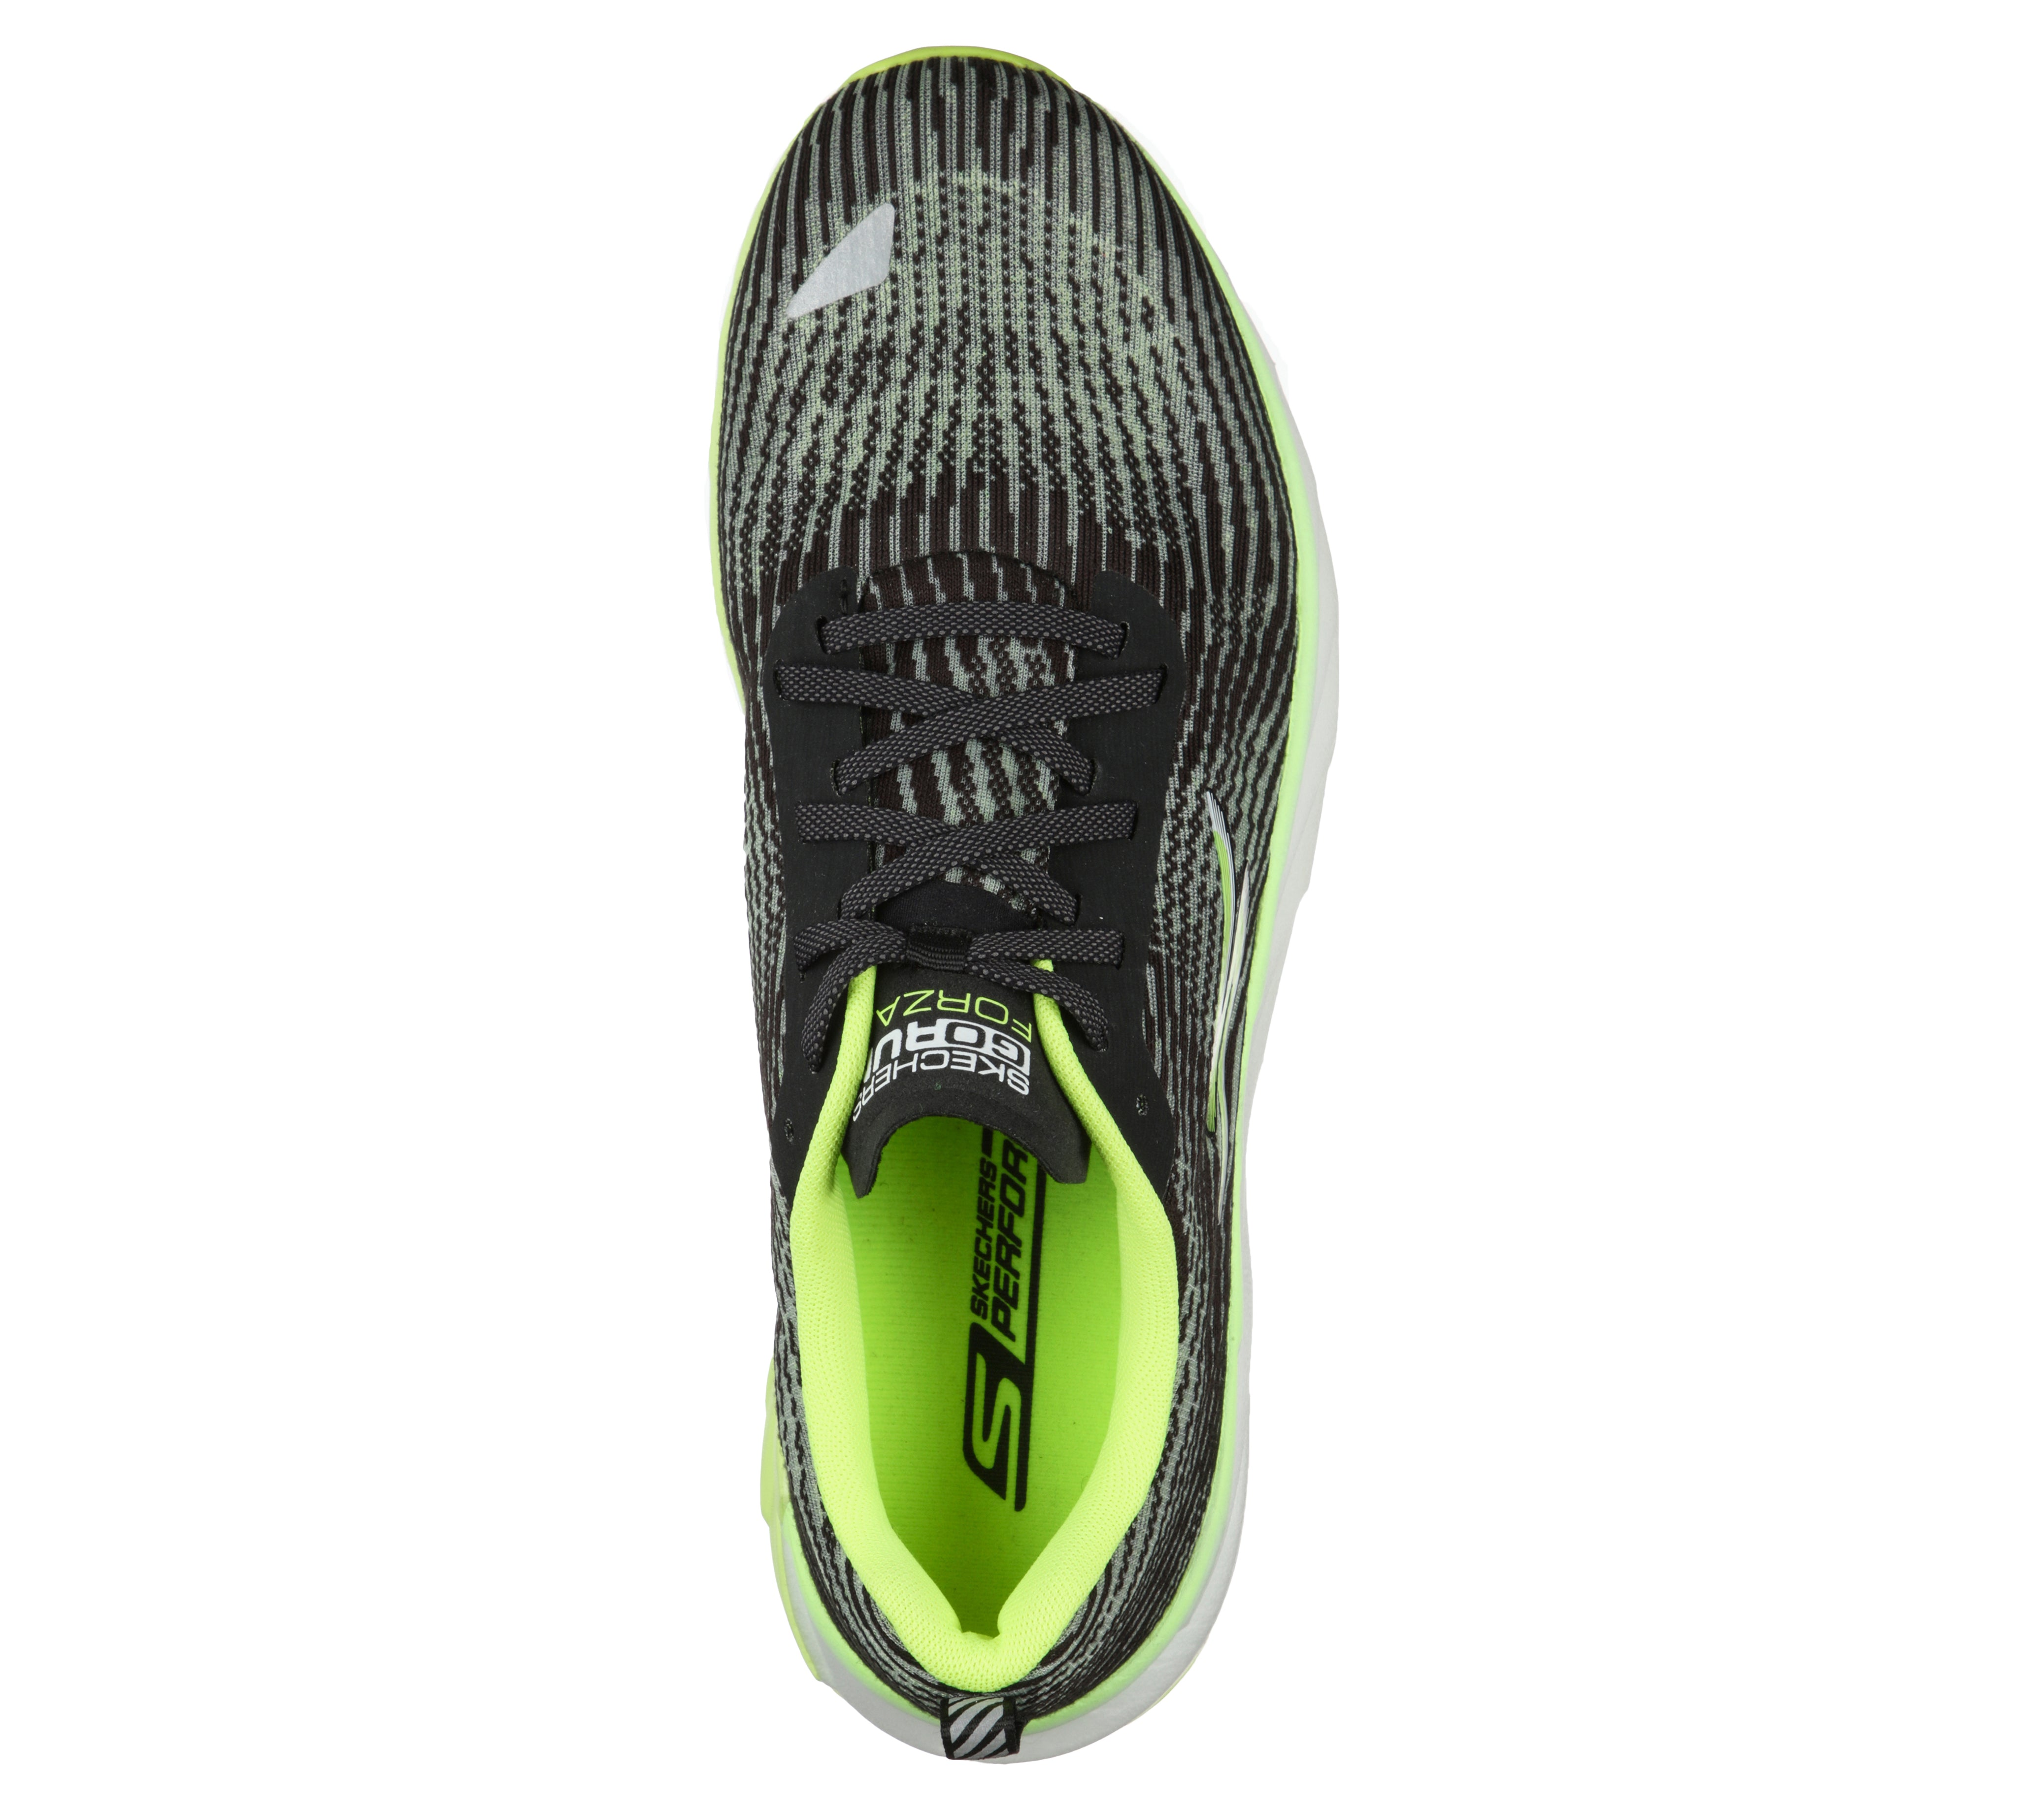 Men's GOrun Forza 4 Hyper (BKLM - Black/Lime)